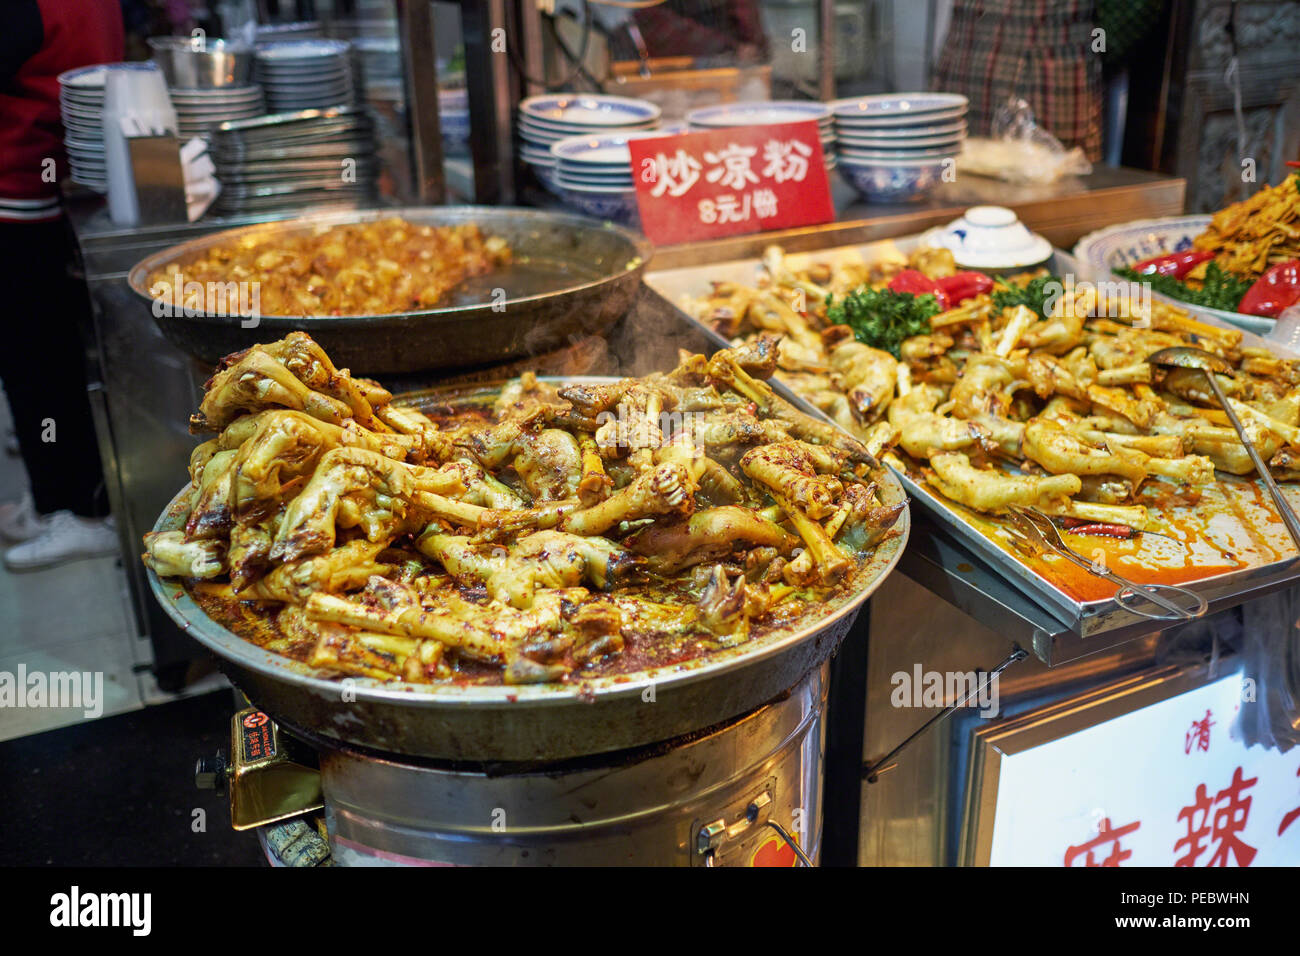 Cooked Goat Hoof and Feet in a Street Food Market, Muslim Street, Xi/an, China - Stock Image